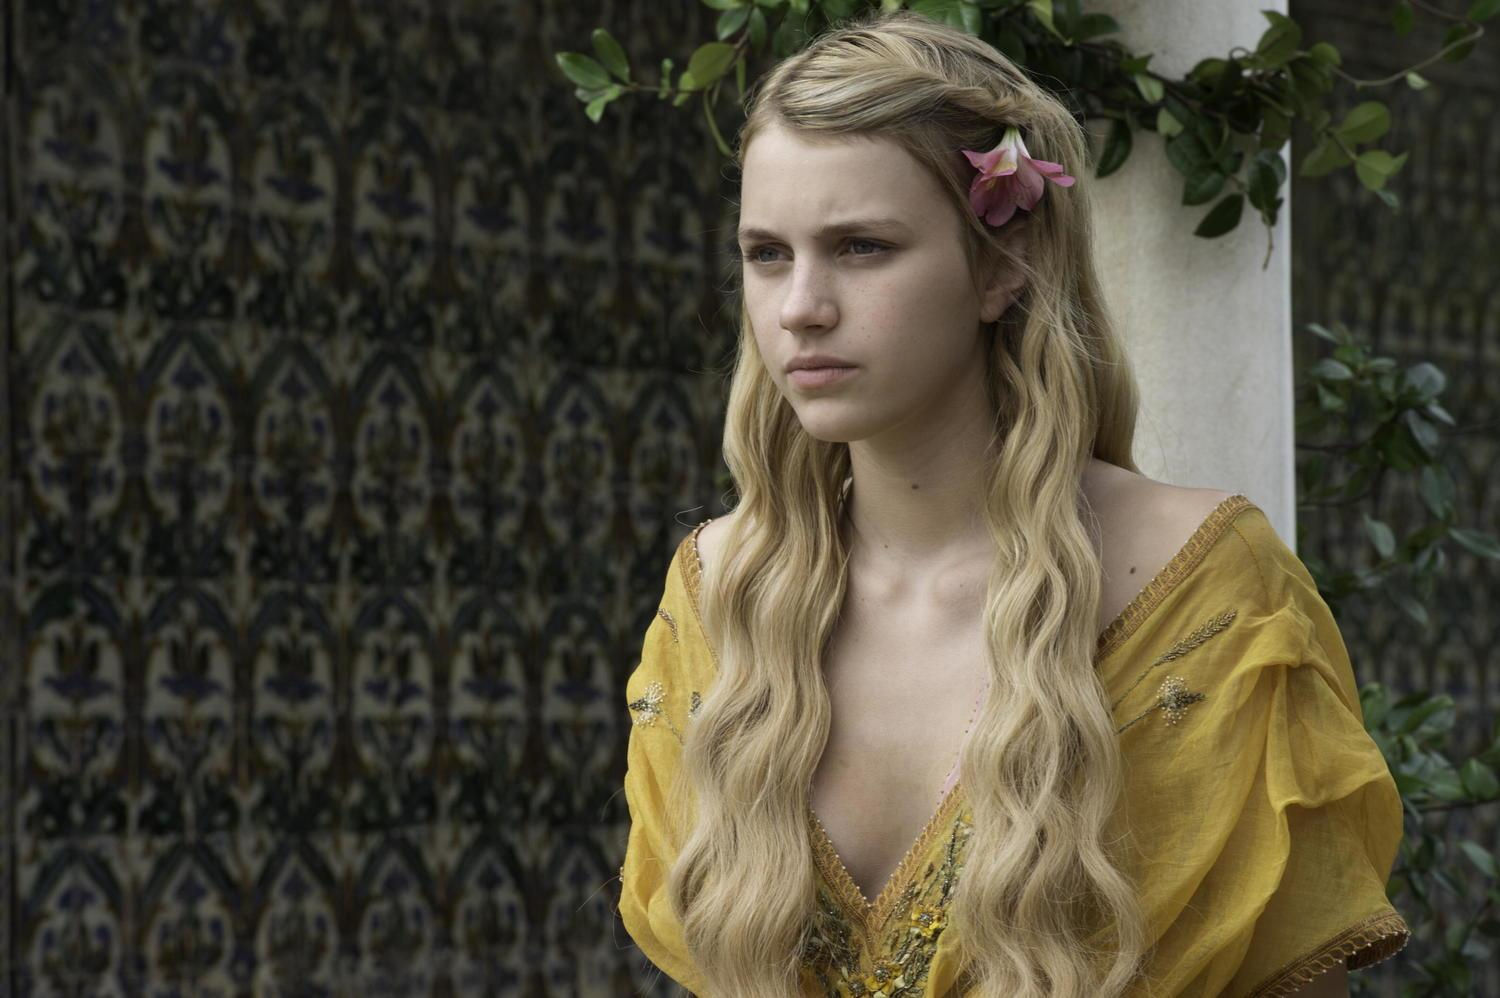 http://watchersonthewall.com/wp-content/uploads/2015/03/Nell-Tiger-Free-photo-Macall-B.-Polay-HBO.jpg